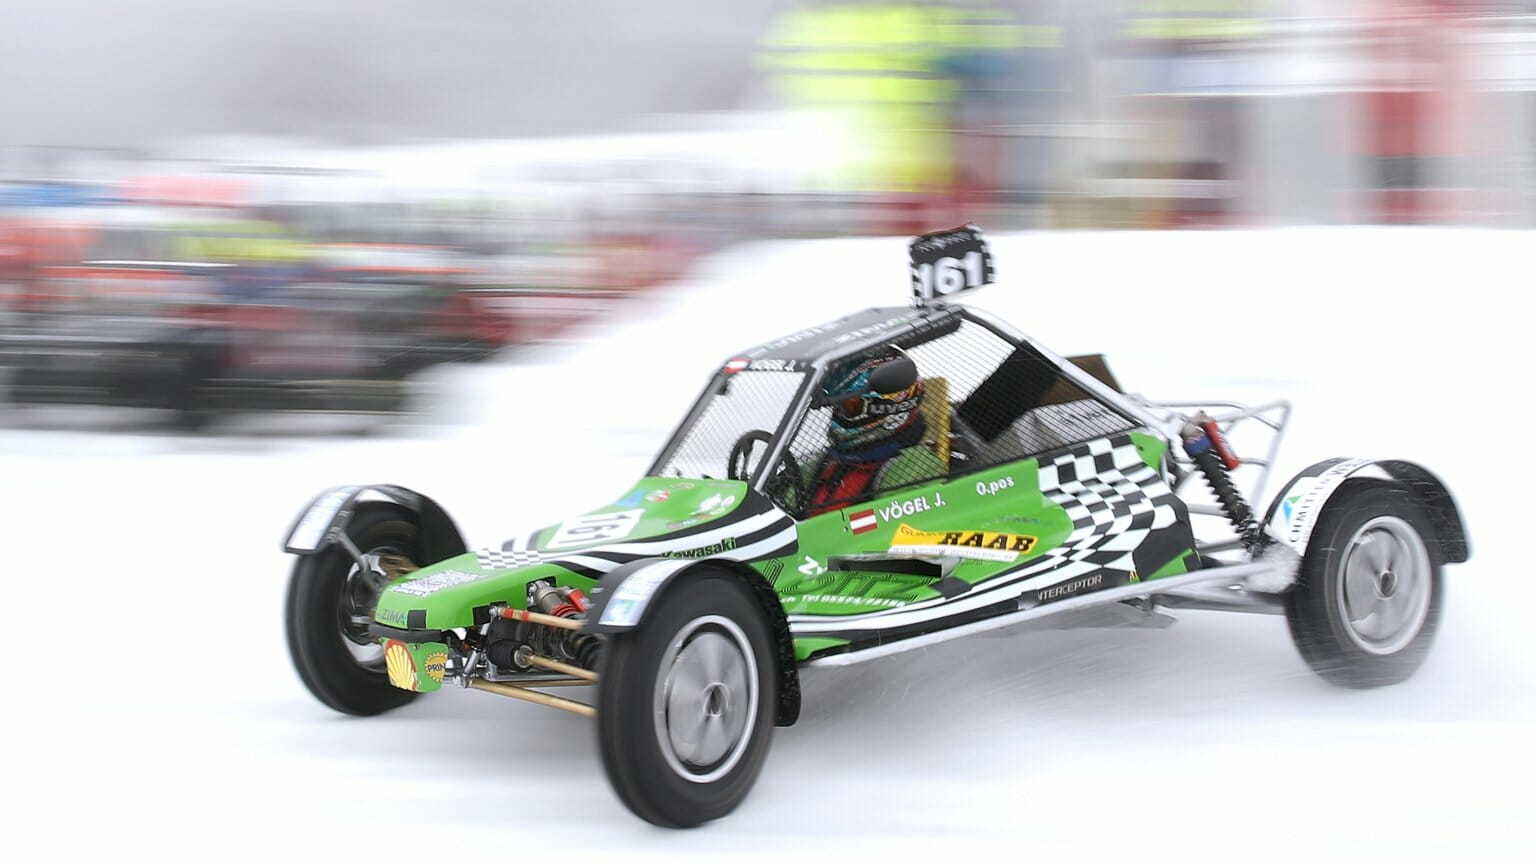 Buggy-style vehicle makes a run on the snow-covered track